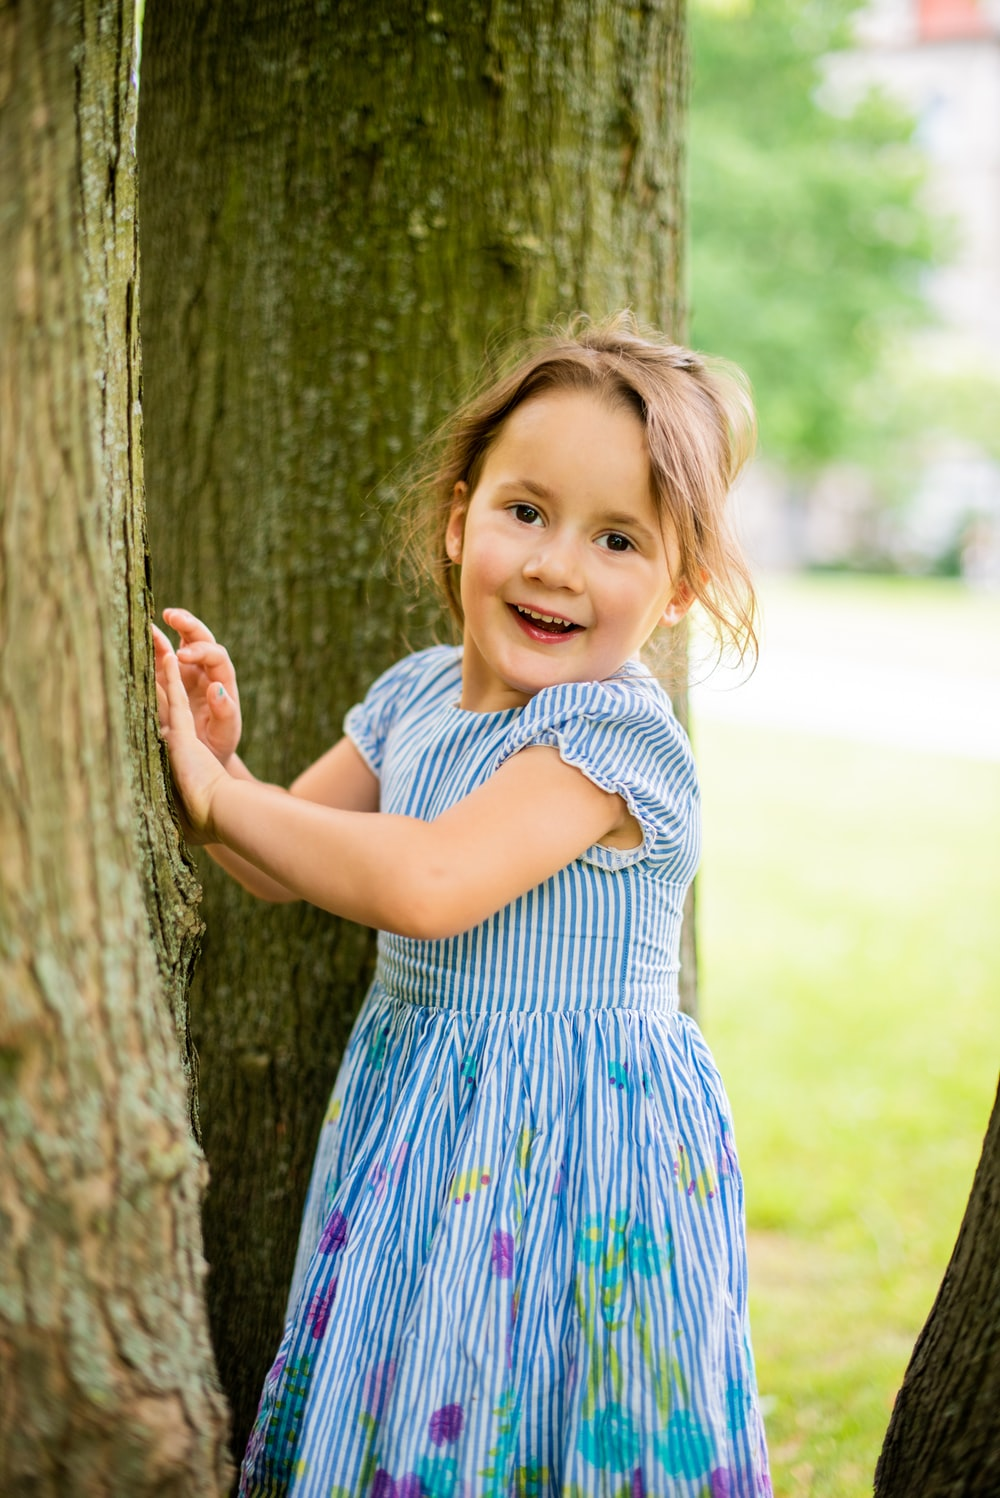 girl in blue and white polka dot dress standing beside brown tree during daytime